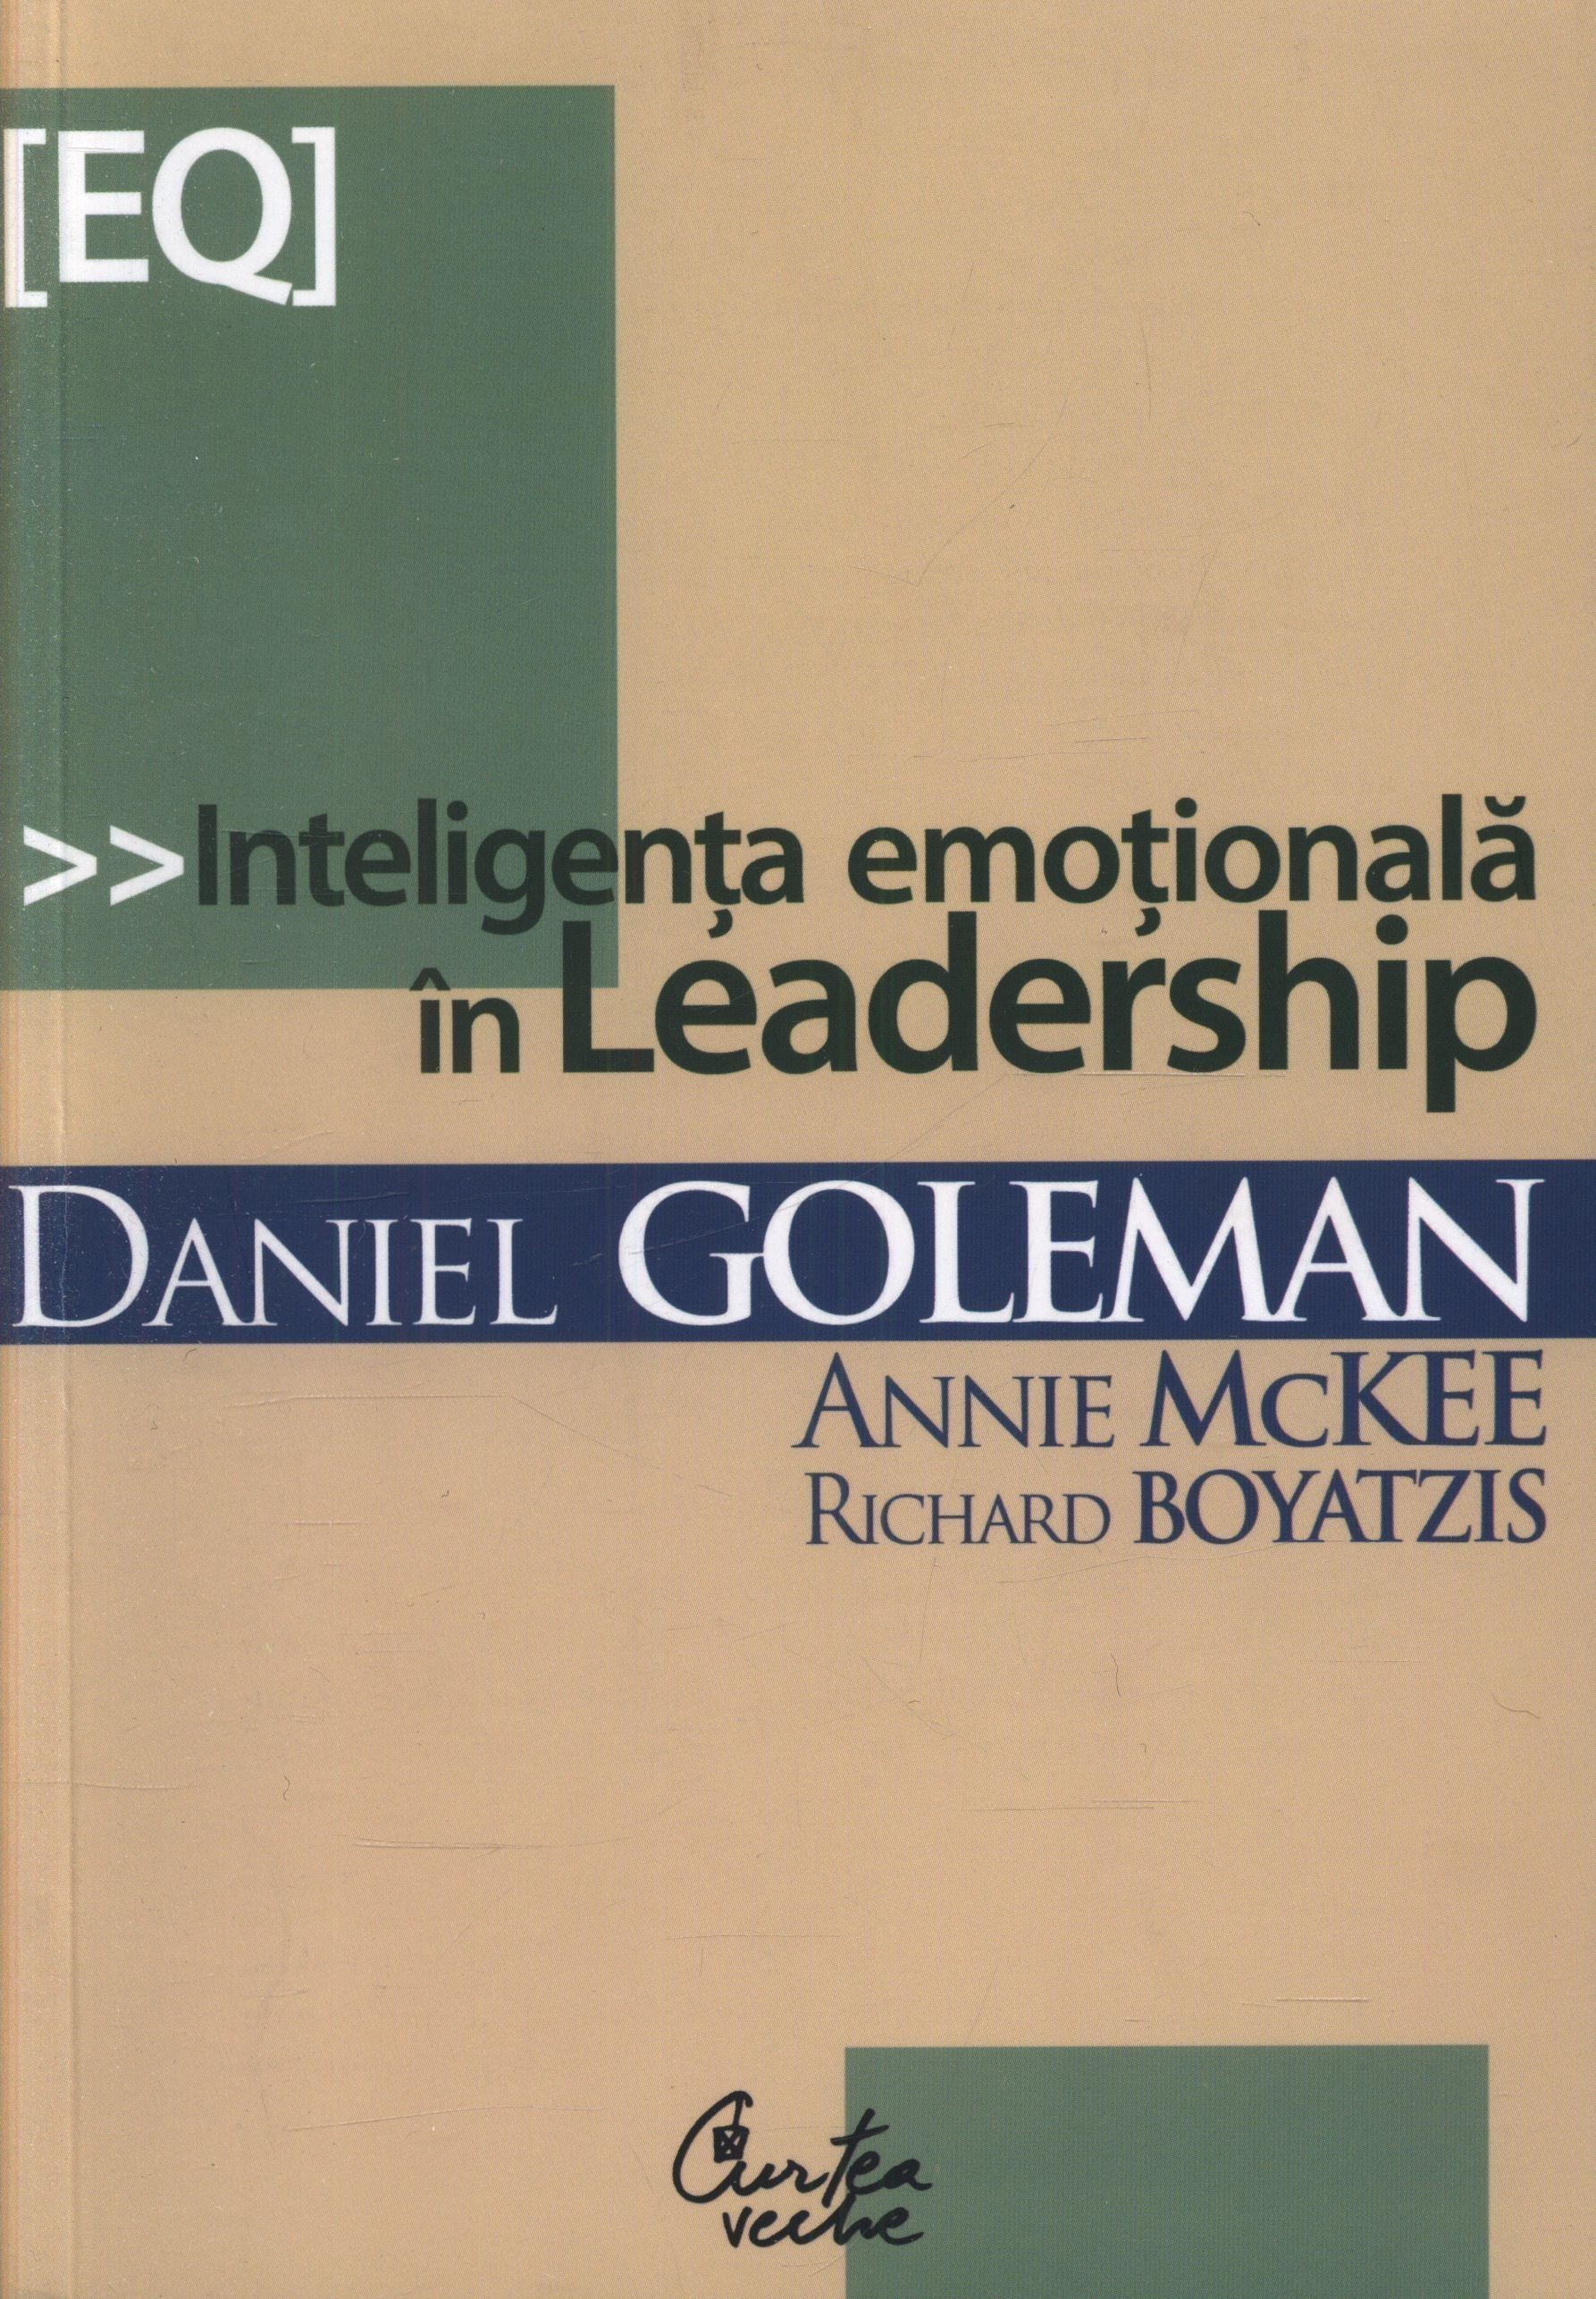 Daniel Goleman, Annie McKee, Richard Boyatzis - Inteligenta emotionala in Leadership -